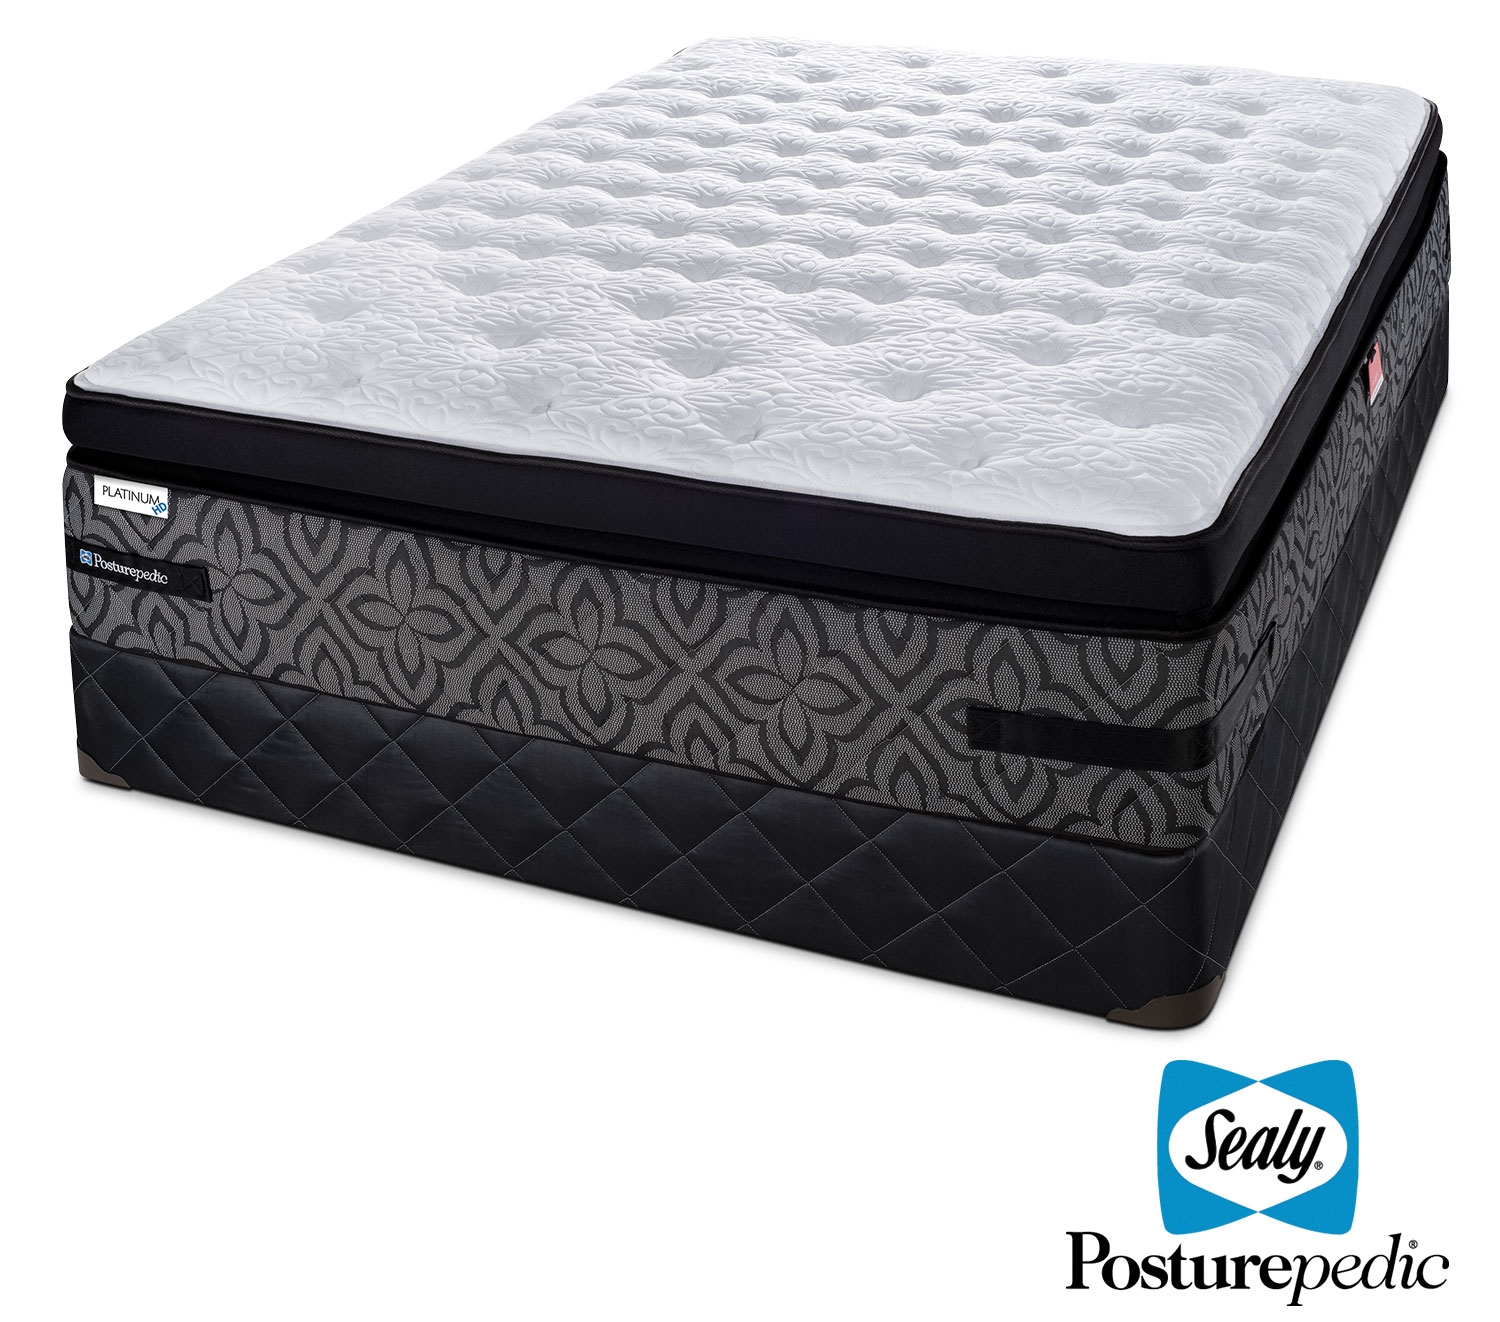 Sealy Posturepedic 3 K Cushion Firm Queen Mattress And Boxspring Set Leon 39 S